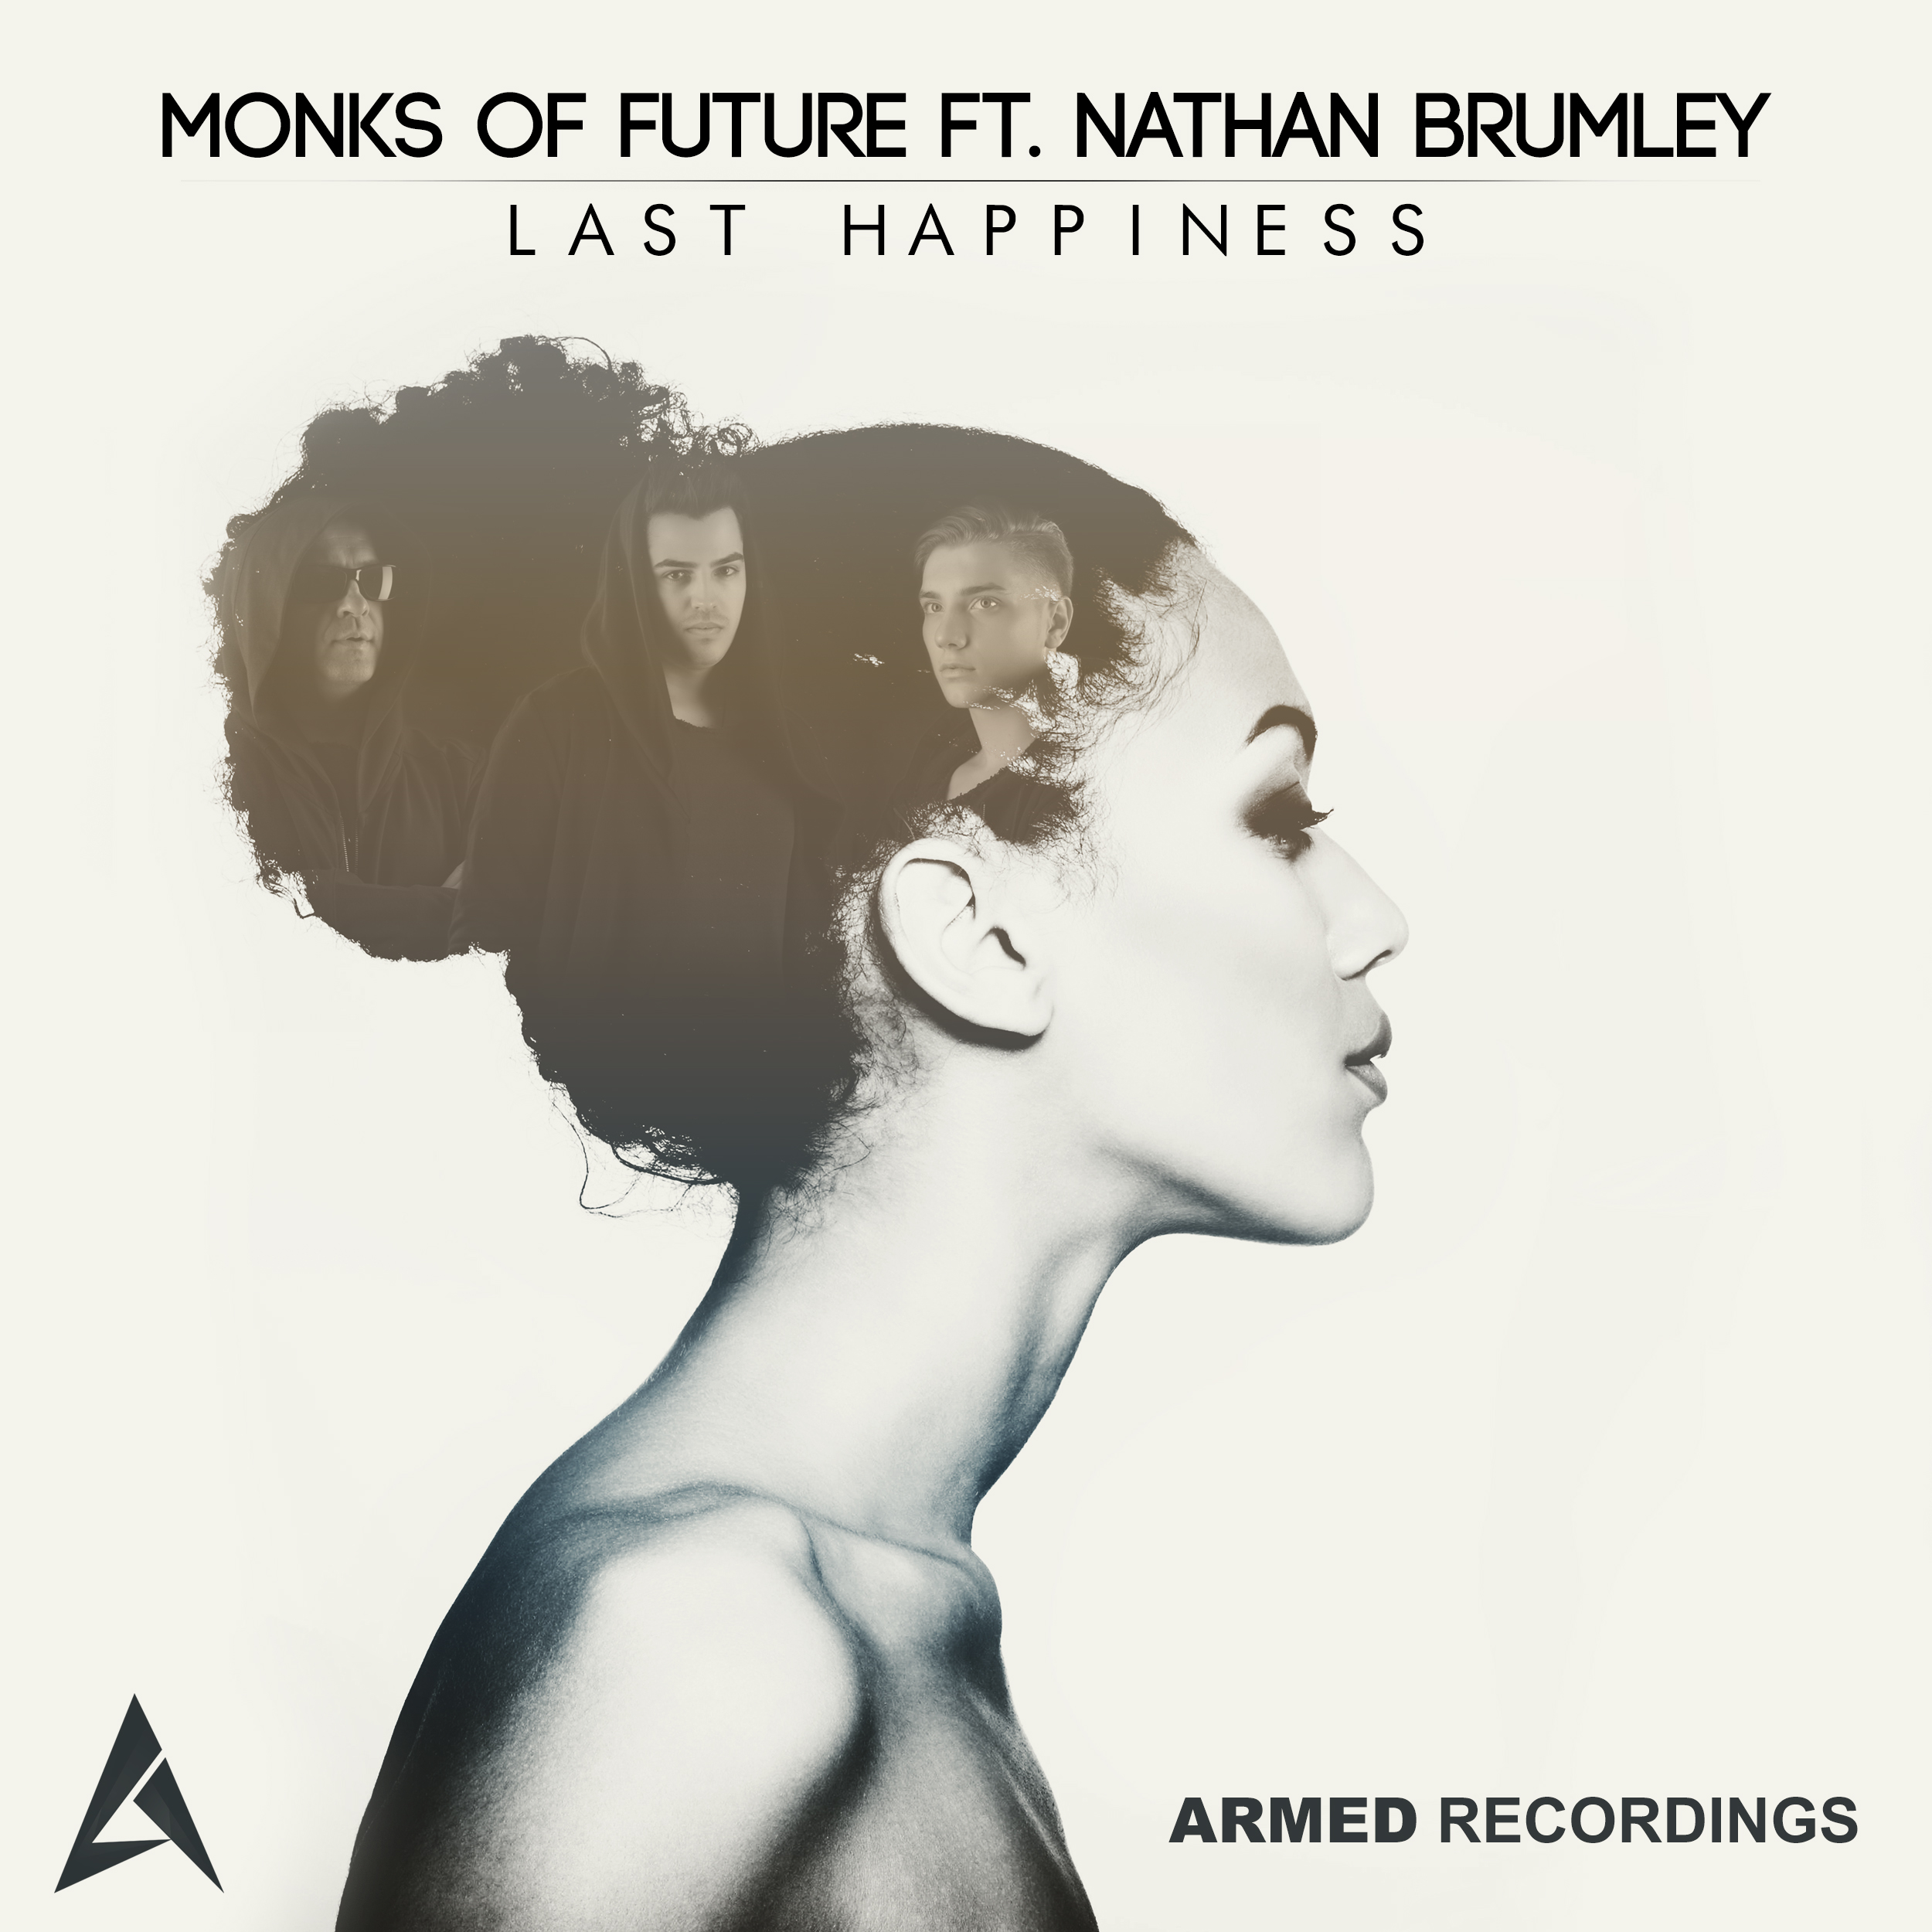 Monks-Of-Future-feat-Nathan-Brumley-Last-Happiness-official-artwork